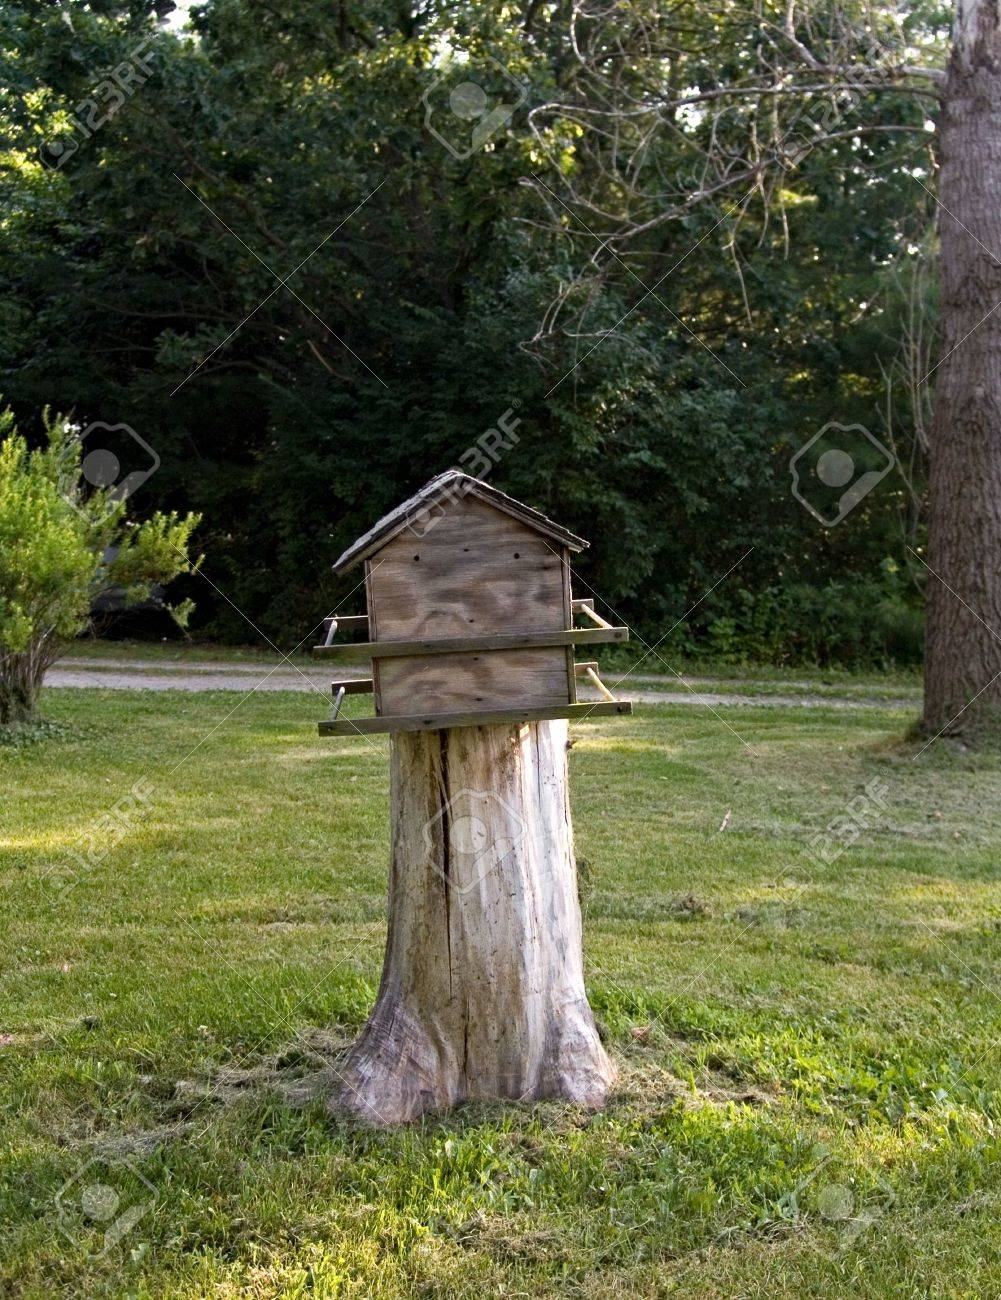 Tree stump house - An Old Rustic Bird House On A Tree Stump In A Rural Area Stock Photo